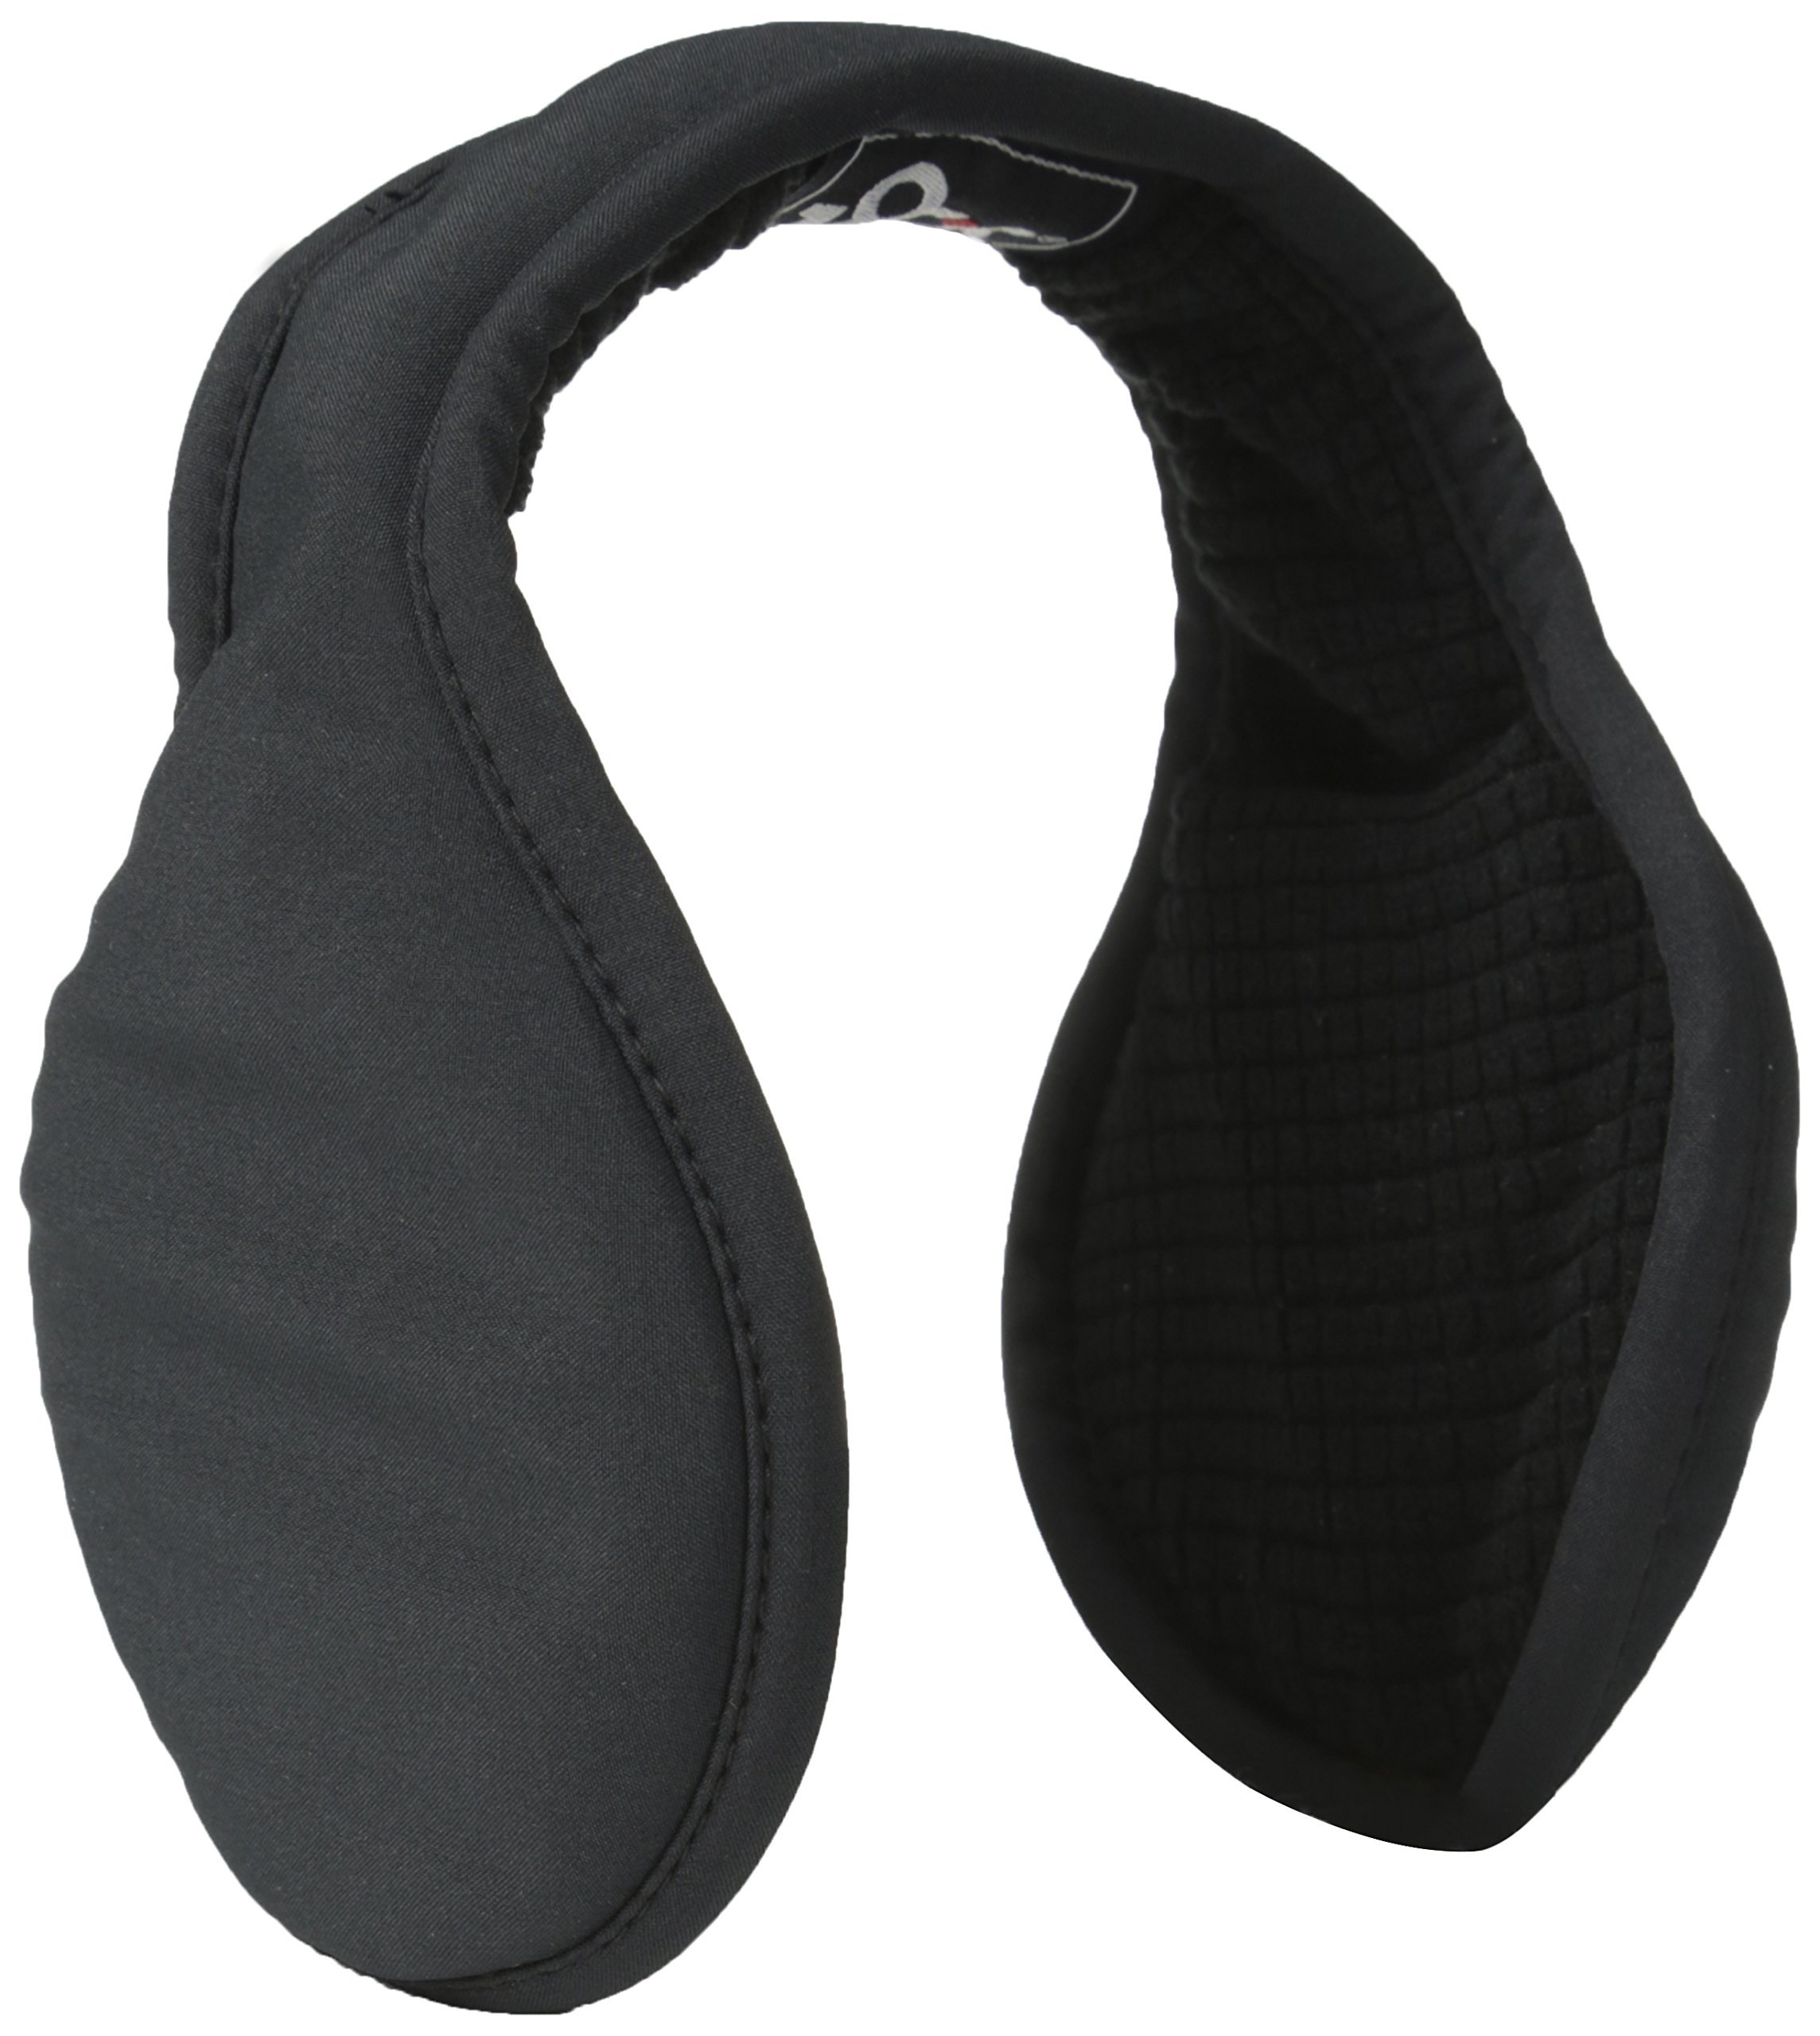 180s Urban Ear Warmer, Black, One Size